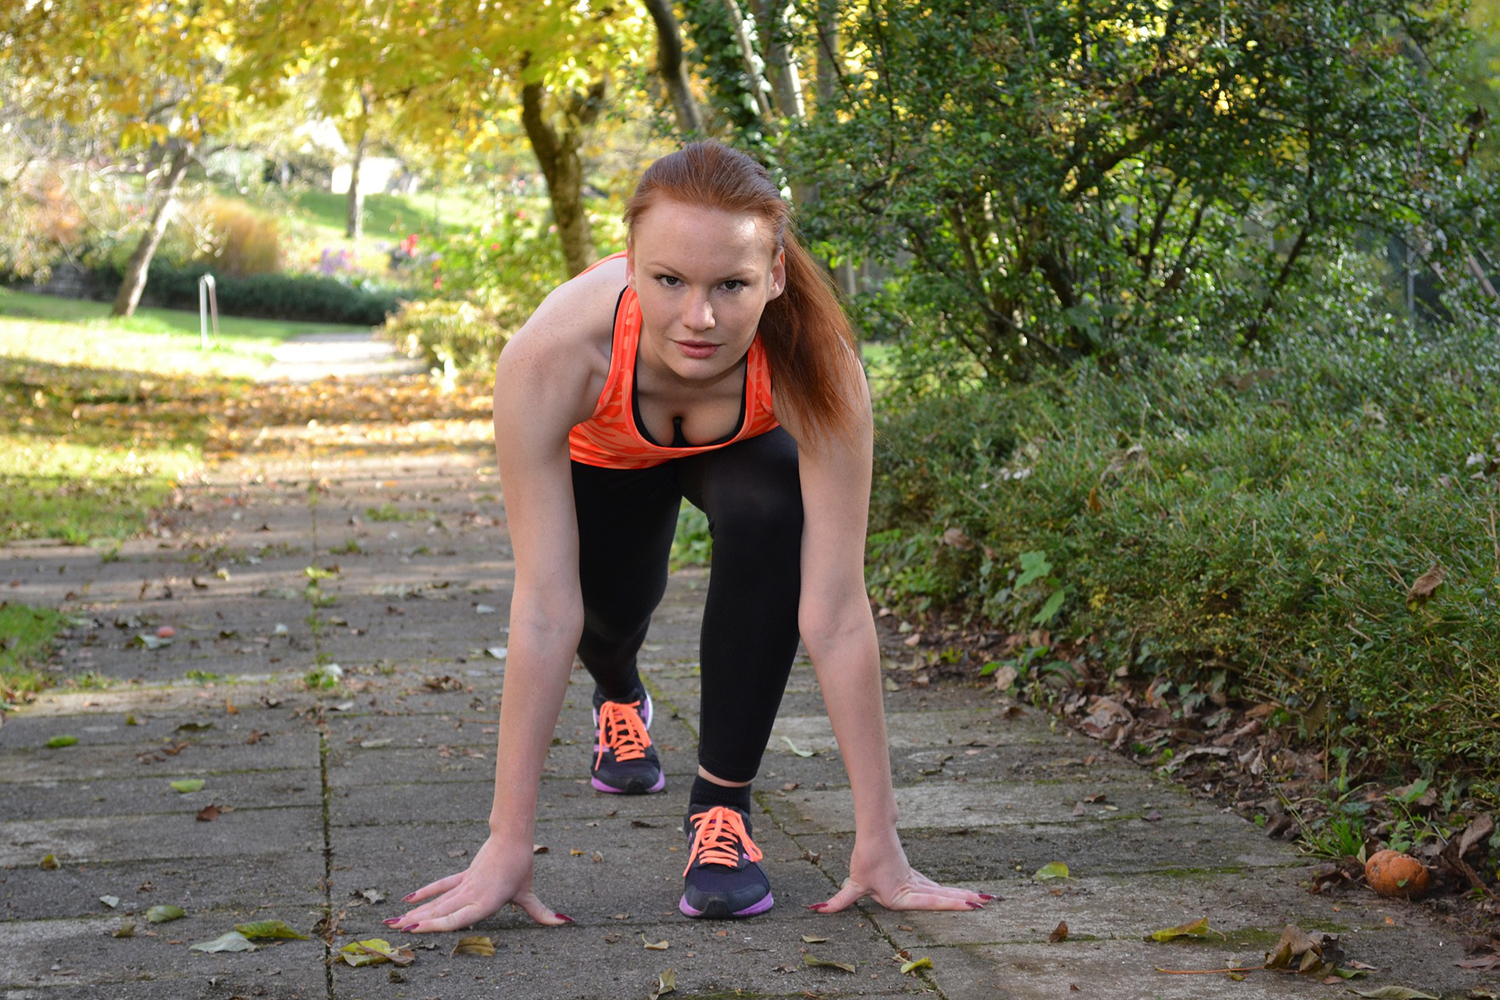 Fit Woman In The Park Ready To Run